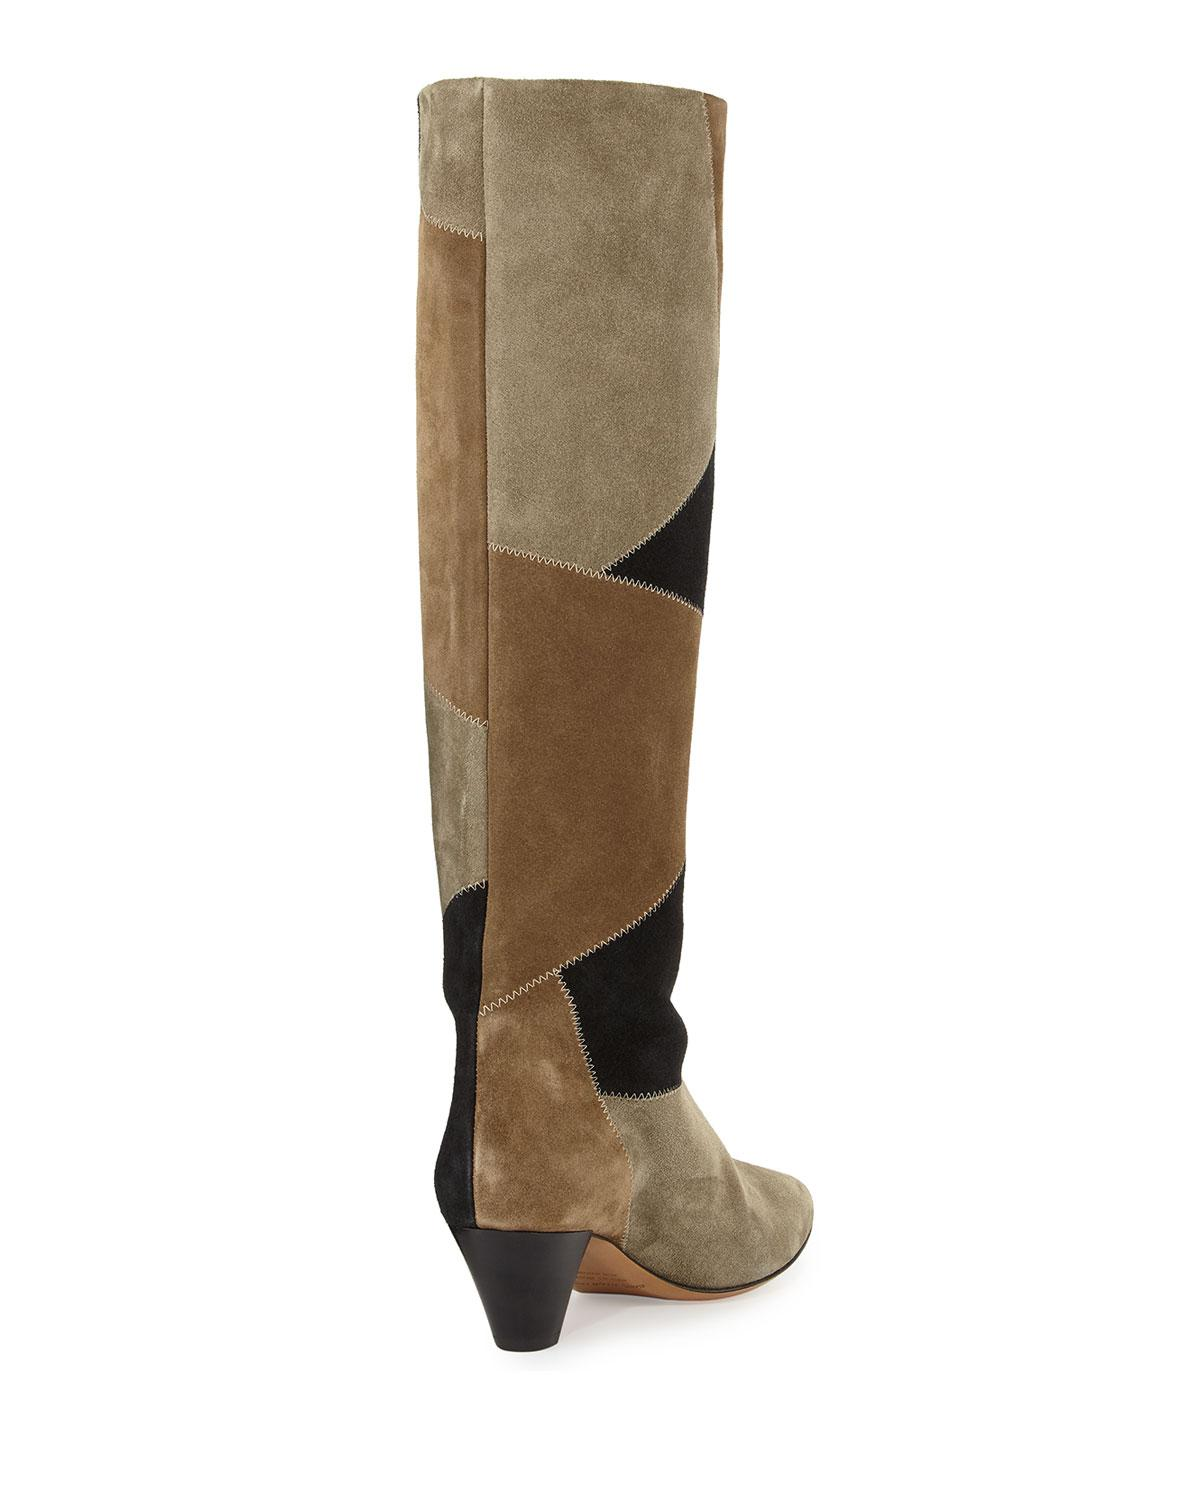 Isabel Marant Woman Buckled Suede, Smooth And Glossed-leather Over-the-knee Boots Black Size 35 Isabel Marant